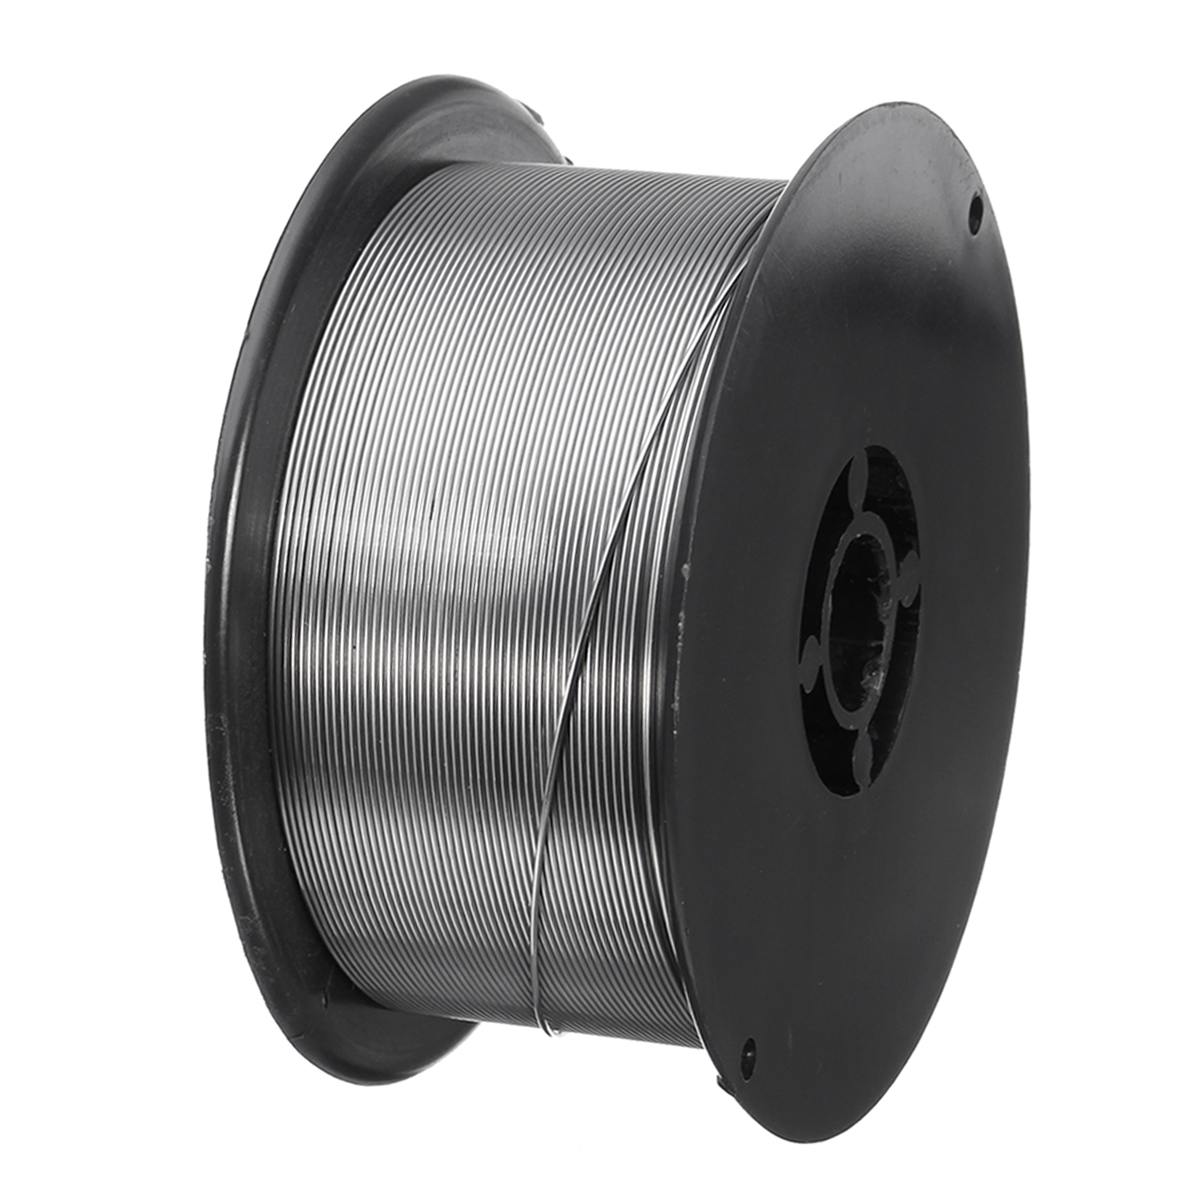 1kg 08mm Gasless Mig Welding Wire Flux Cored Welder Parts With Tools High Quality In Wires From On Alibaba Group